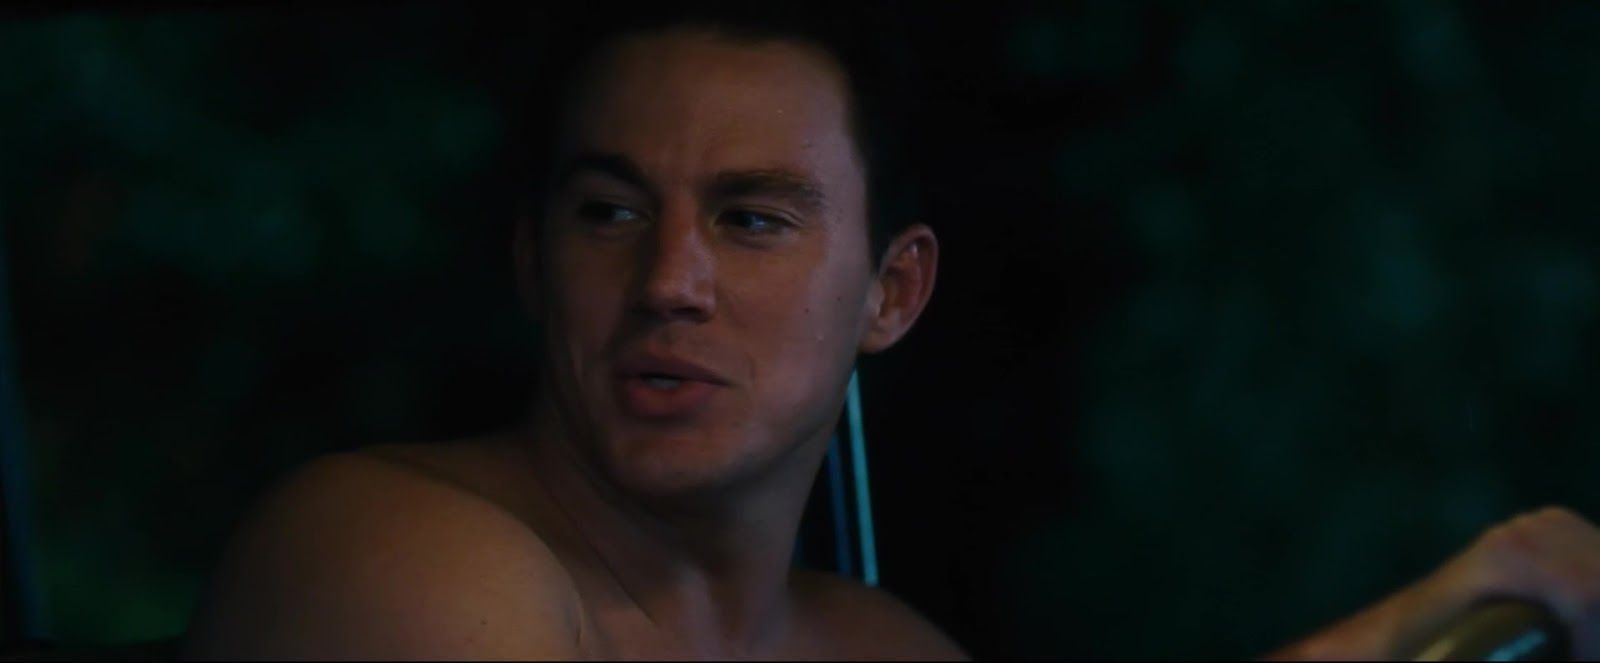 Channing Tatum nude image published in photography book